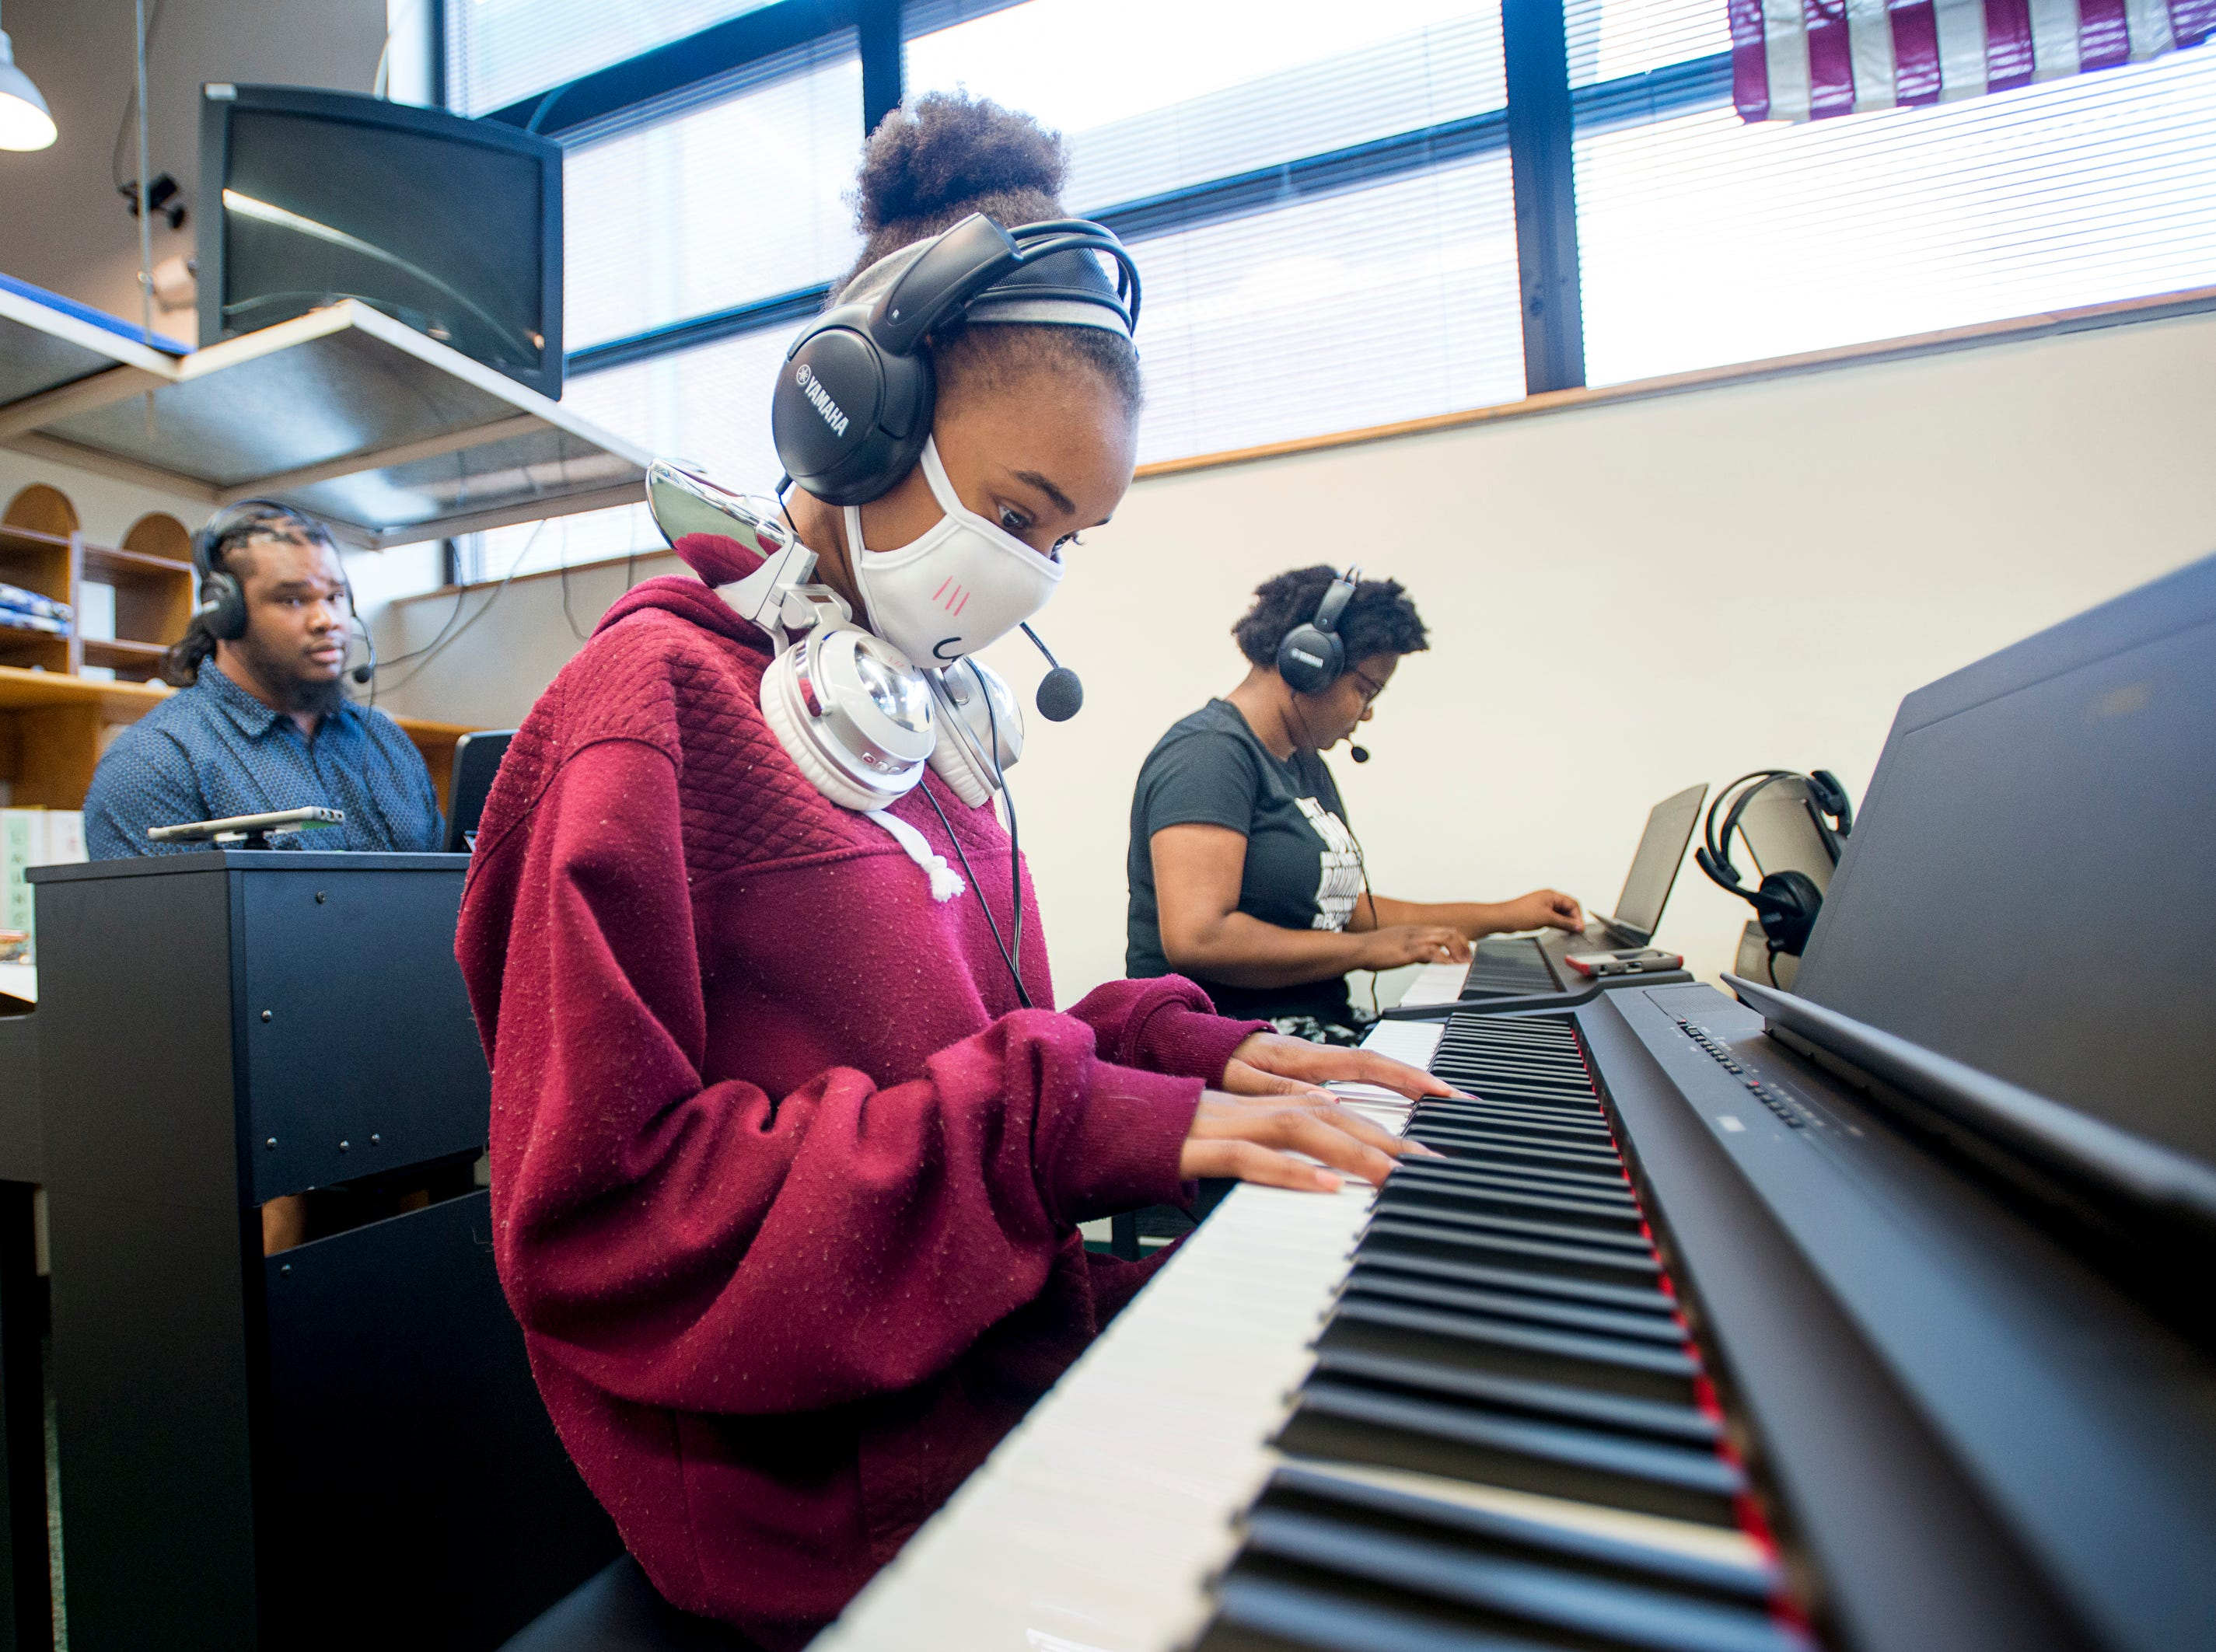 Music teacher Caleb Lovely, left, gives Keira Petterson, 12, center, and Chasity Patterson, 14, a test run of the new piano studio at Warrington Middle School in Pensacola on Friday, August 2, 2018.